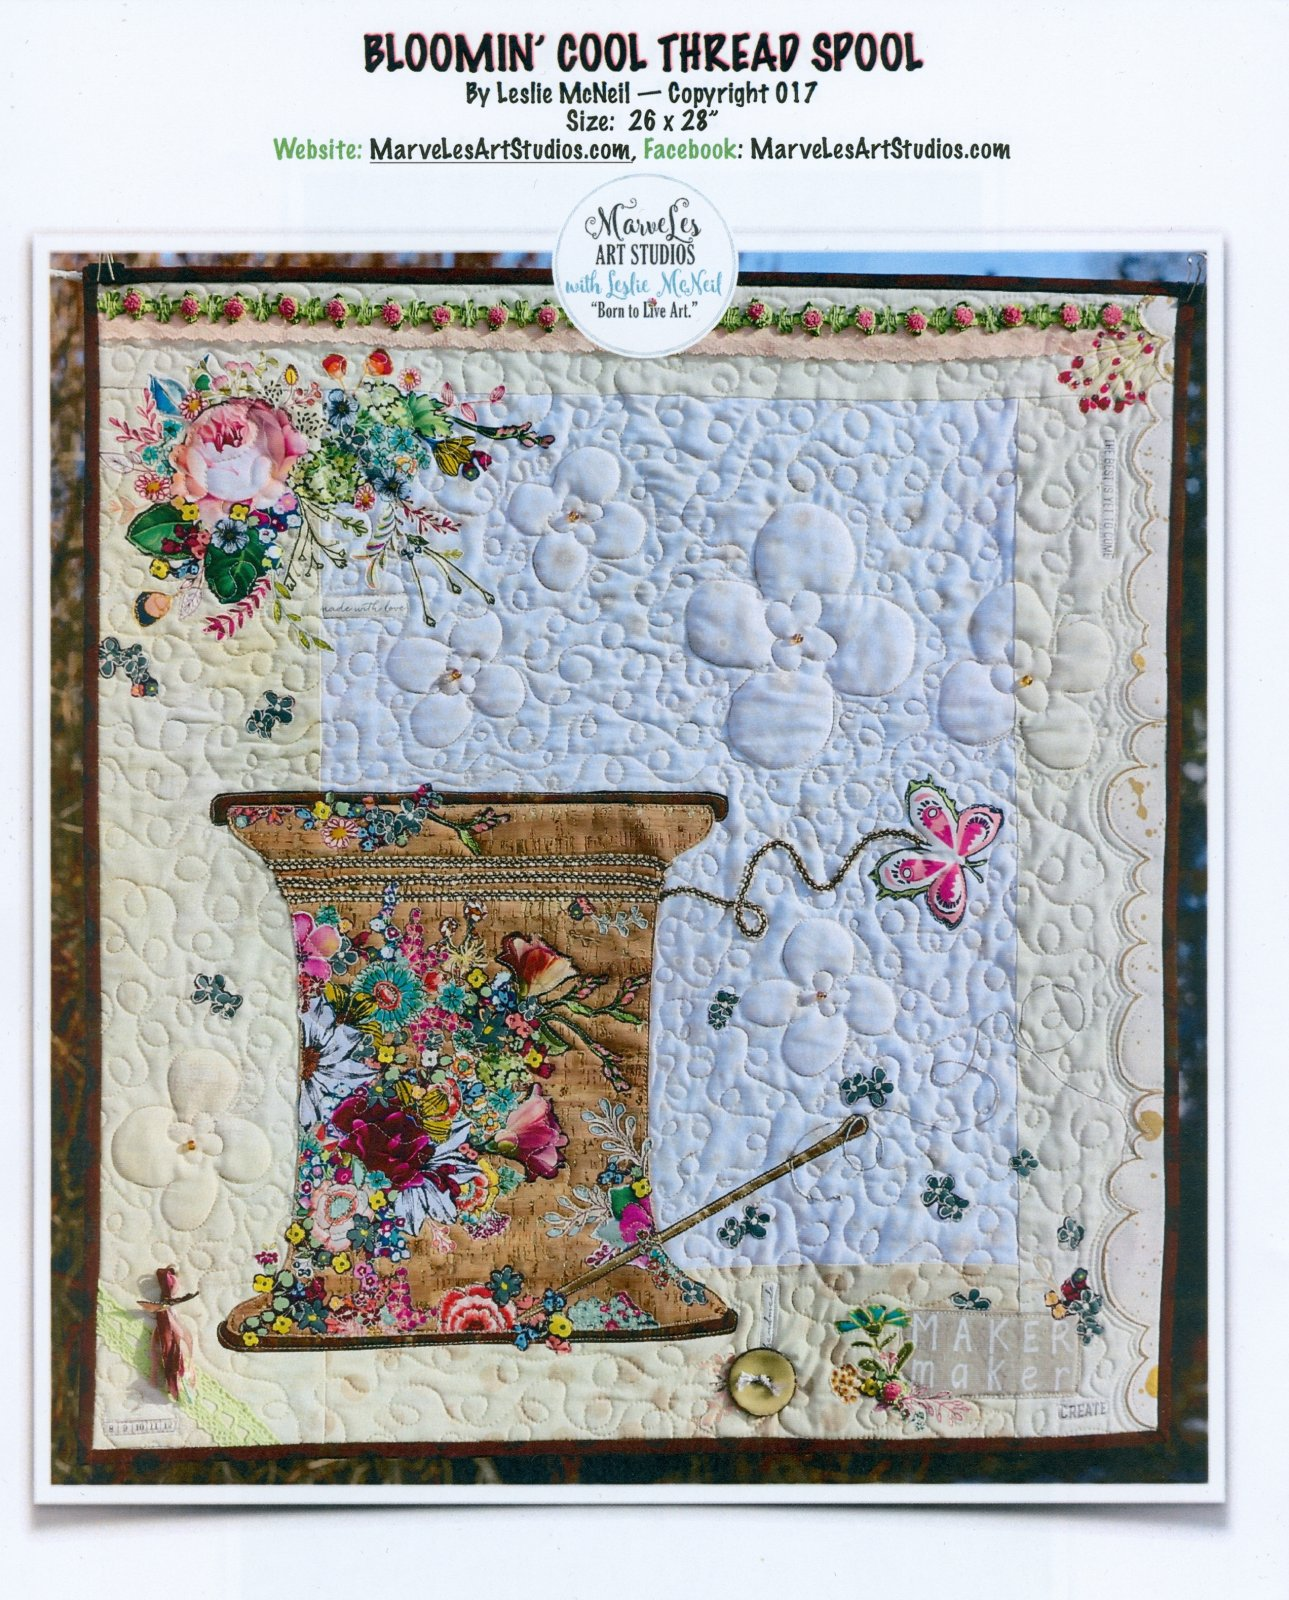 Bloomin' Cool Thread Spool Collage Pattern by Leslie McNeil